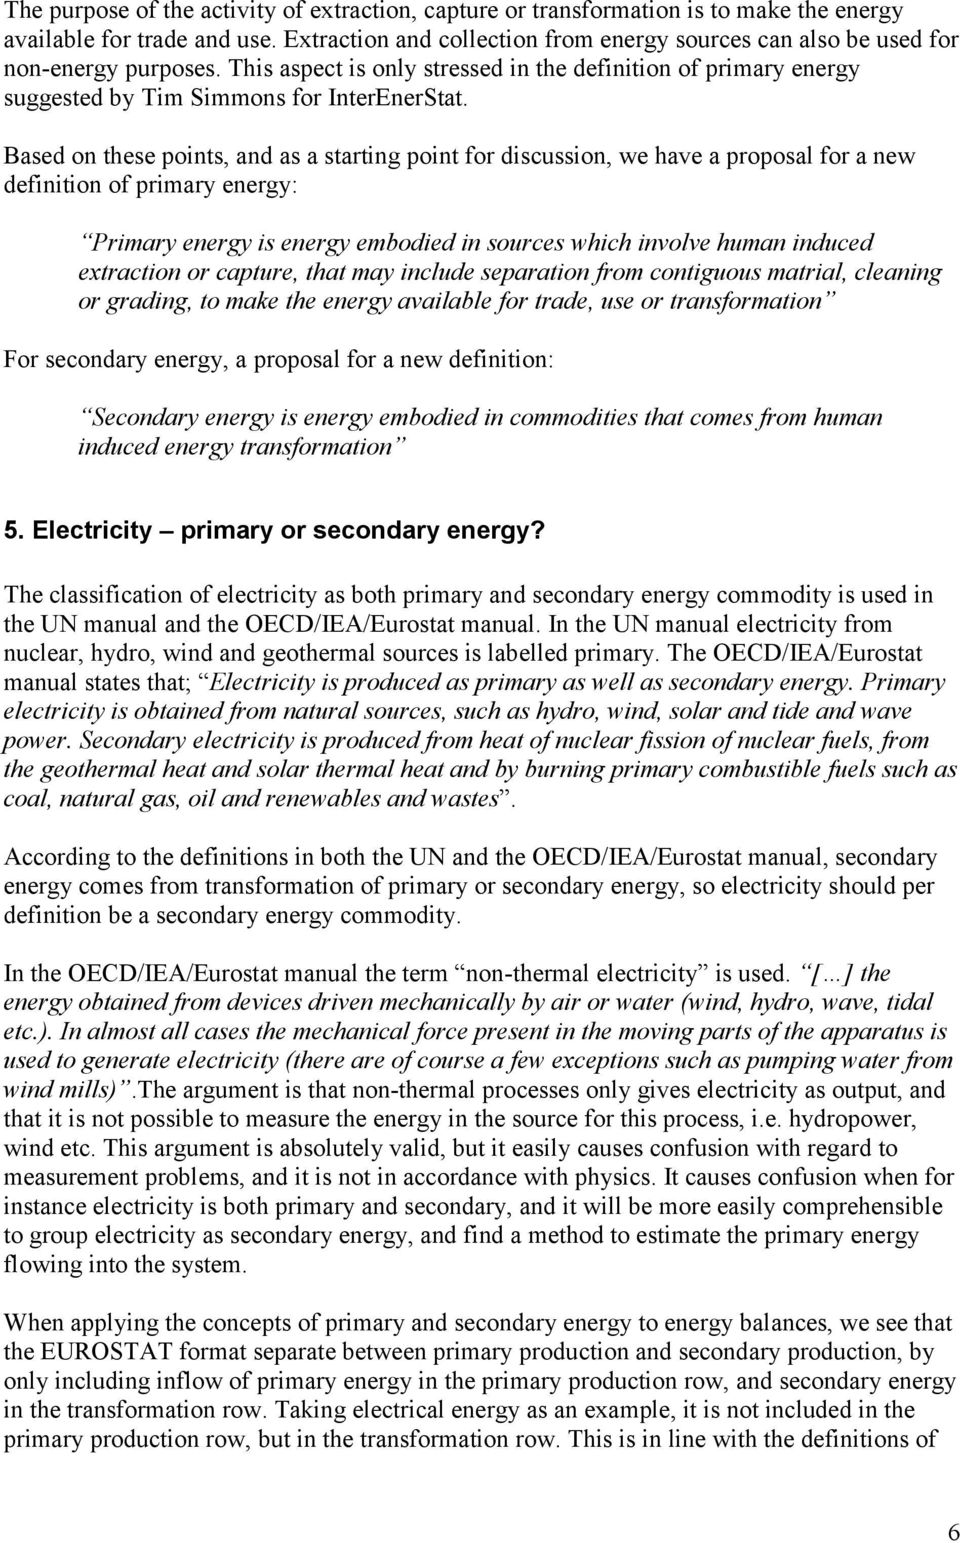 Based on these points, and as a starting point for discussion, we have a proposal for a new definition of primary energy: Primary energy is energy embodied in sources which involve human induced